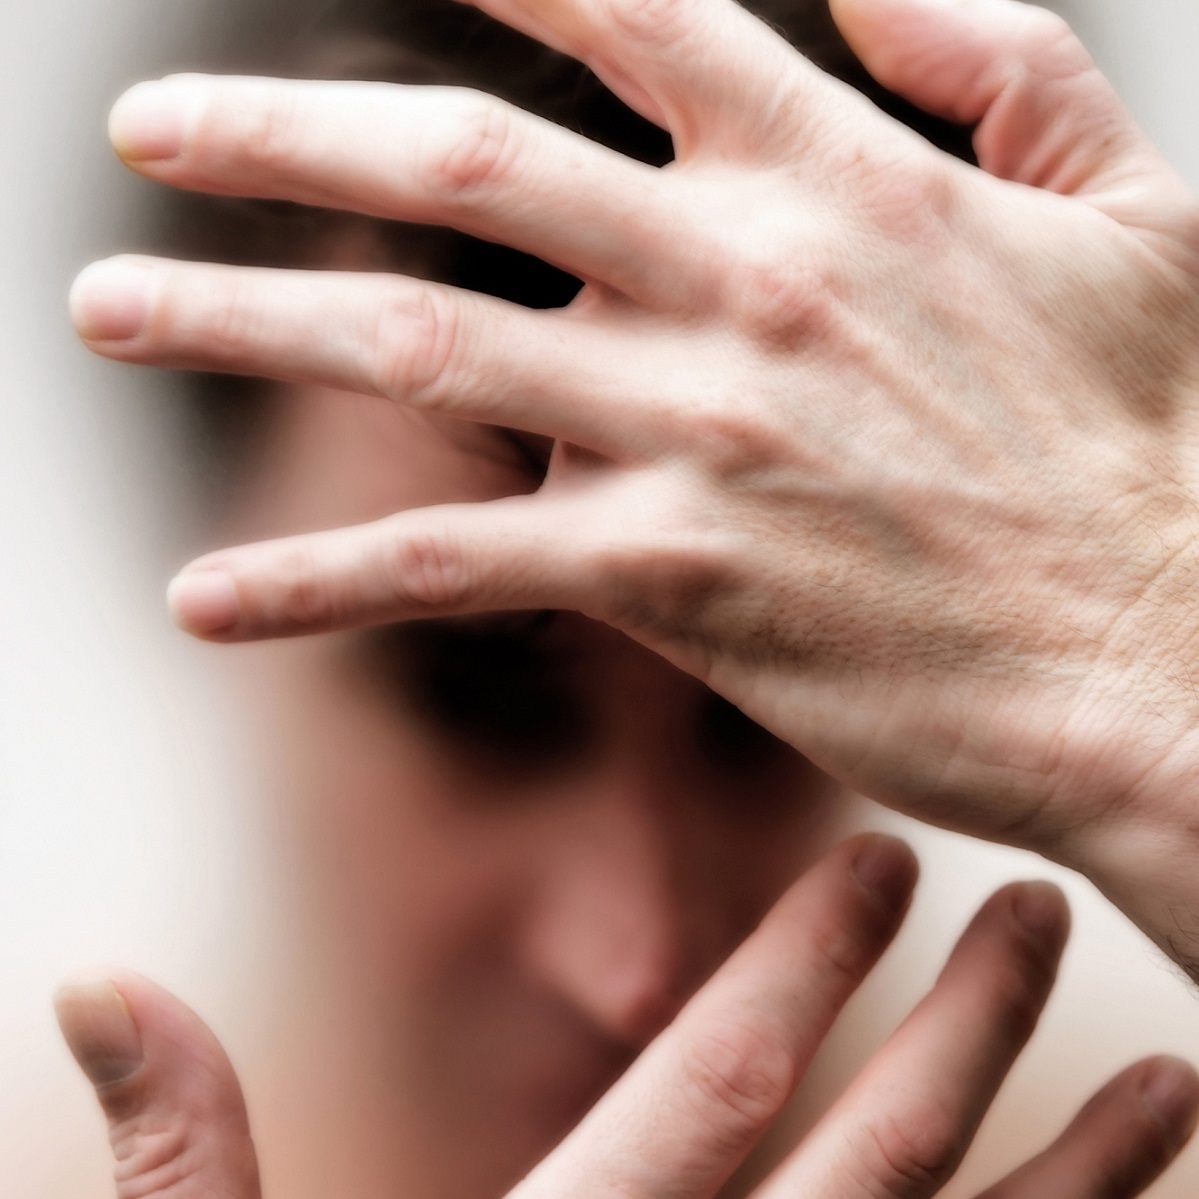 man in pain with hands over face